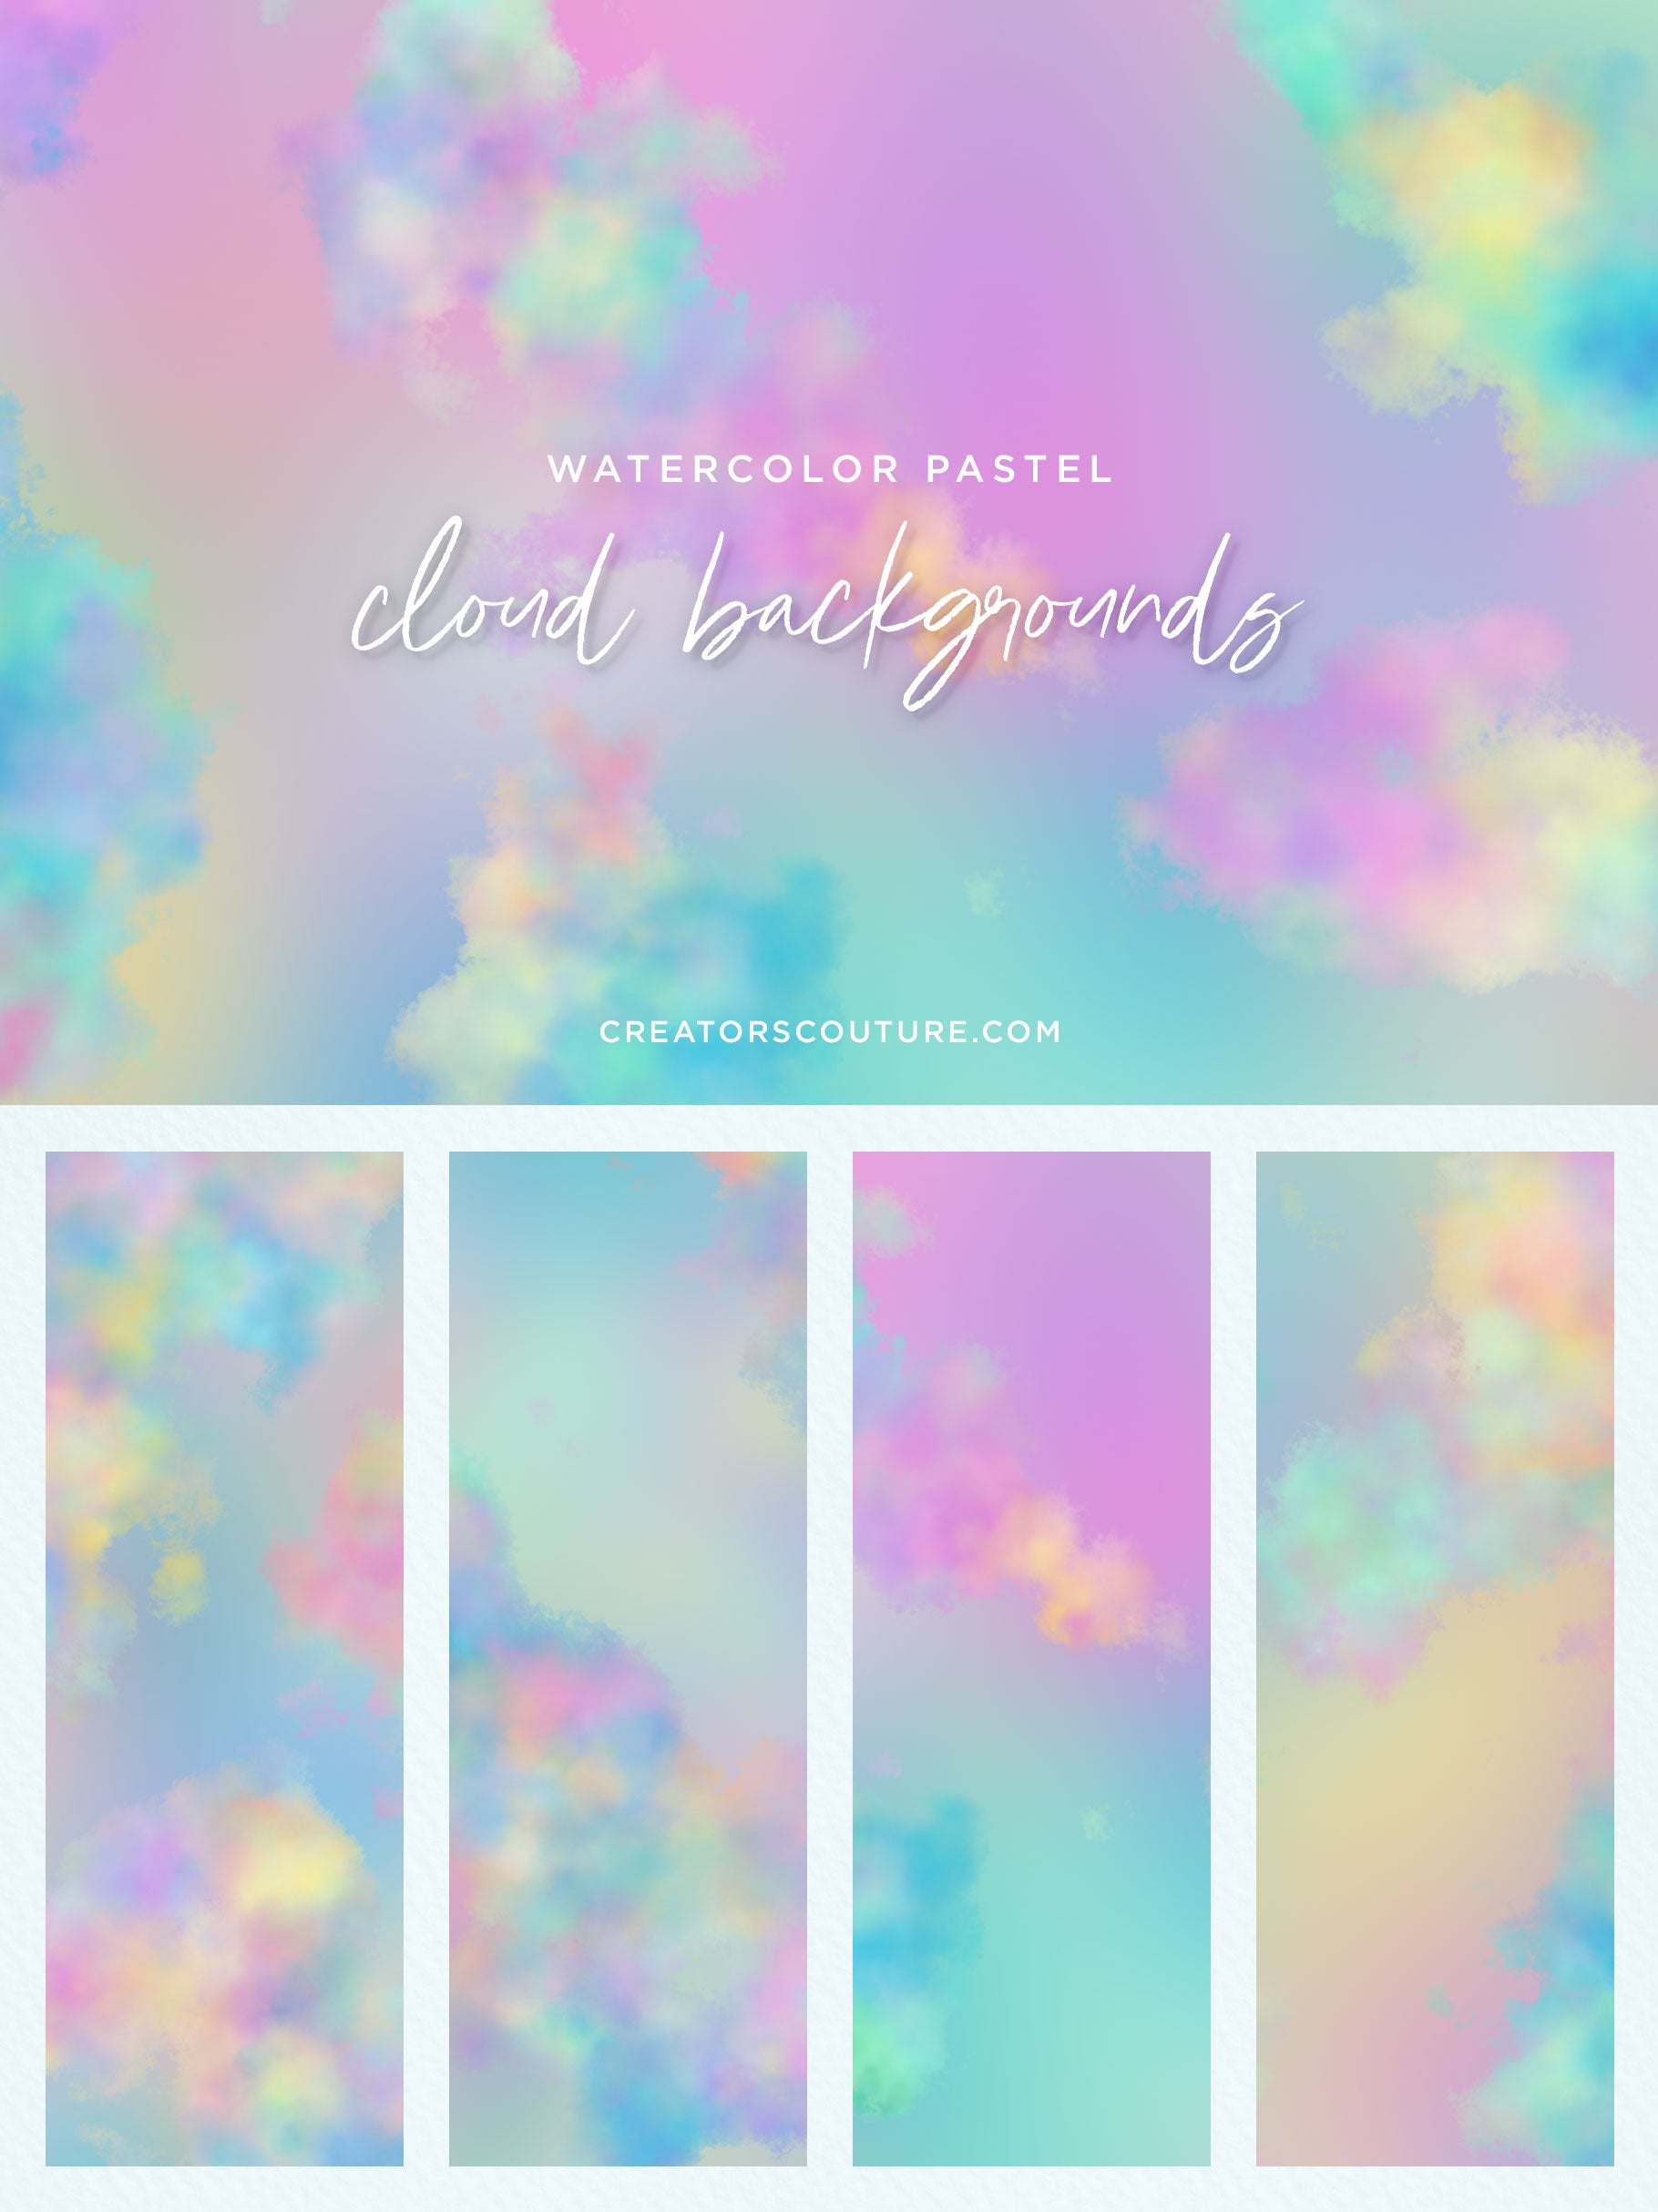 pastel watercolor clouds background clipart